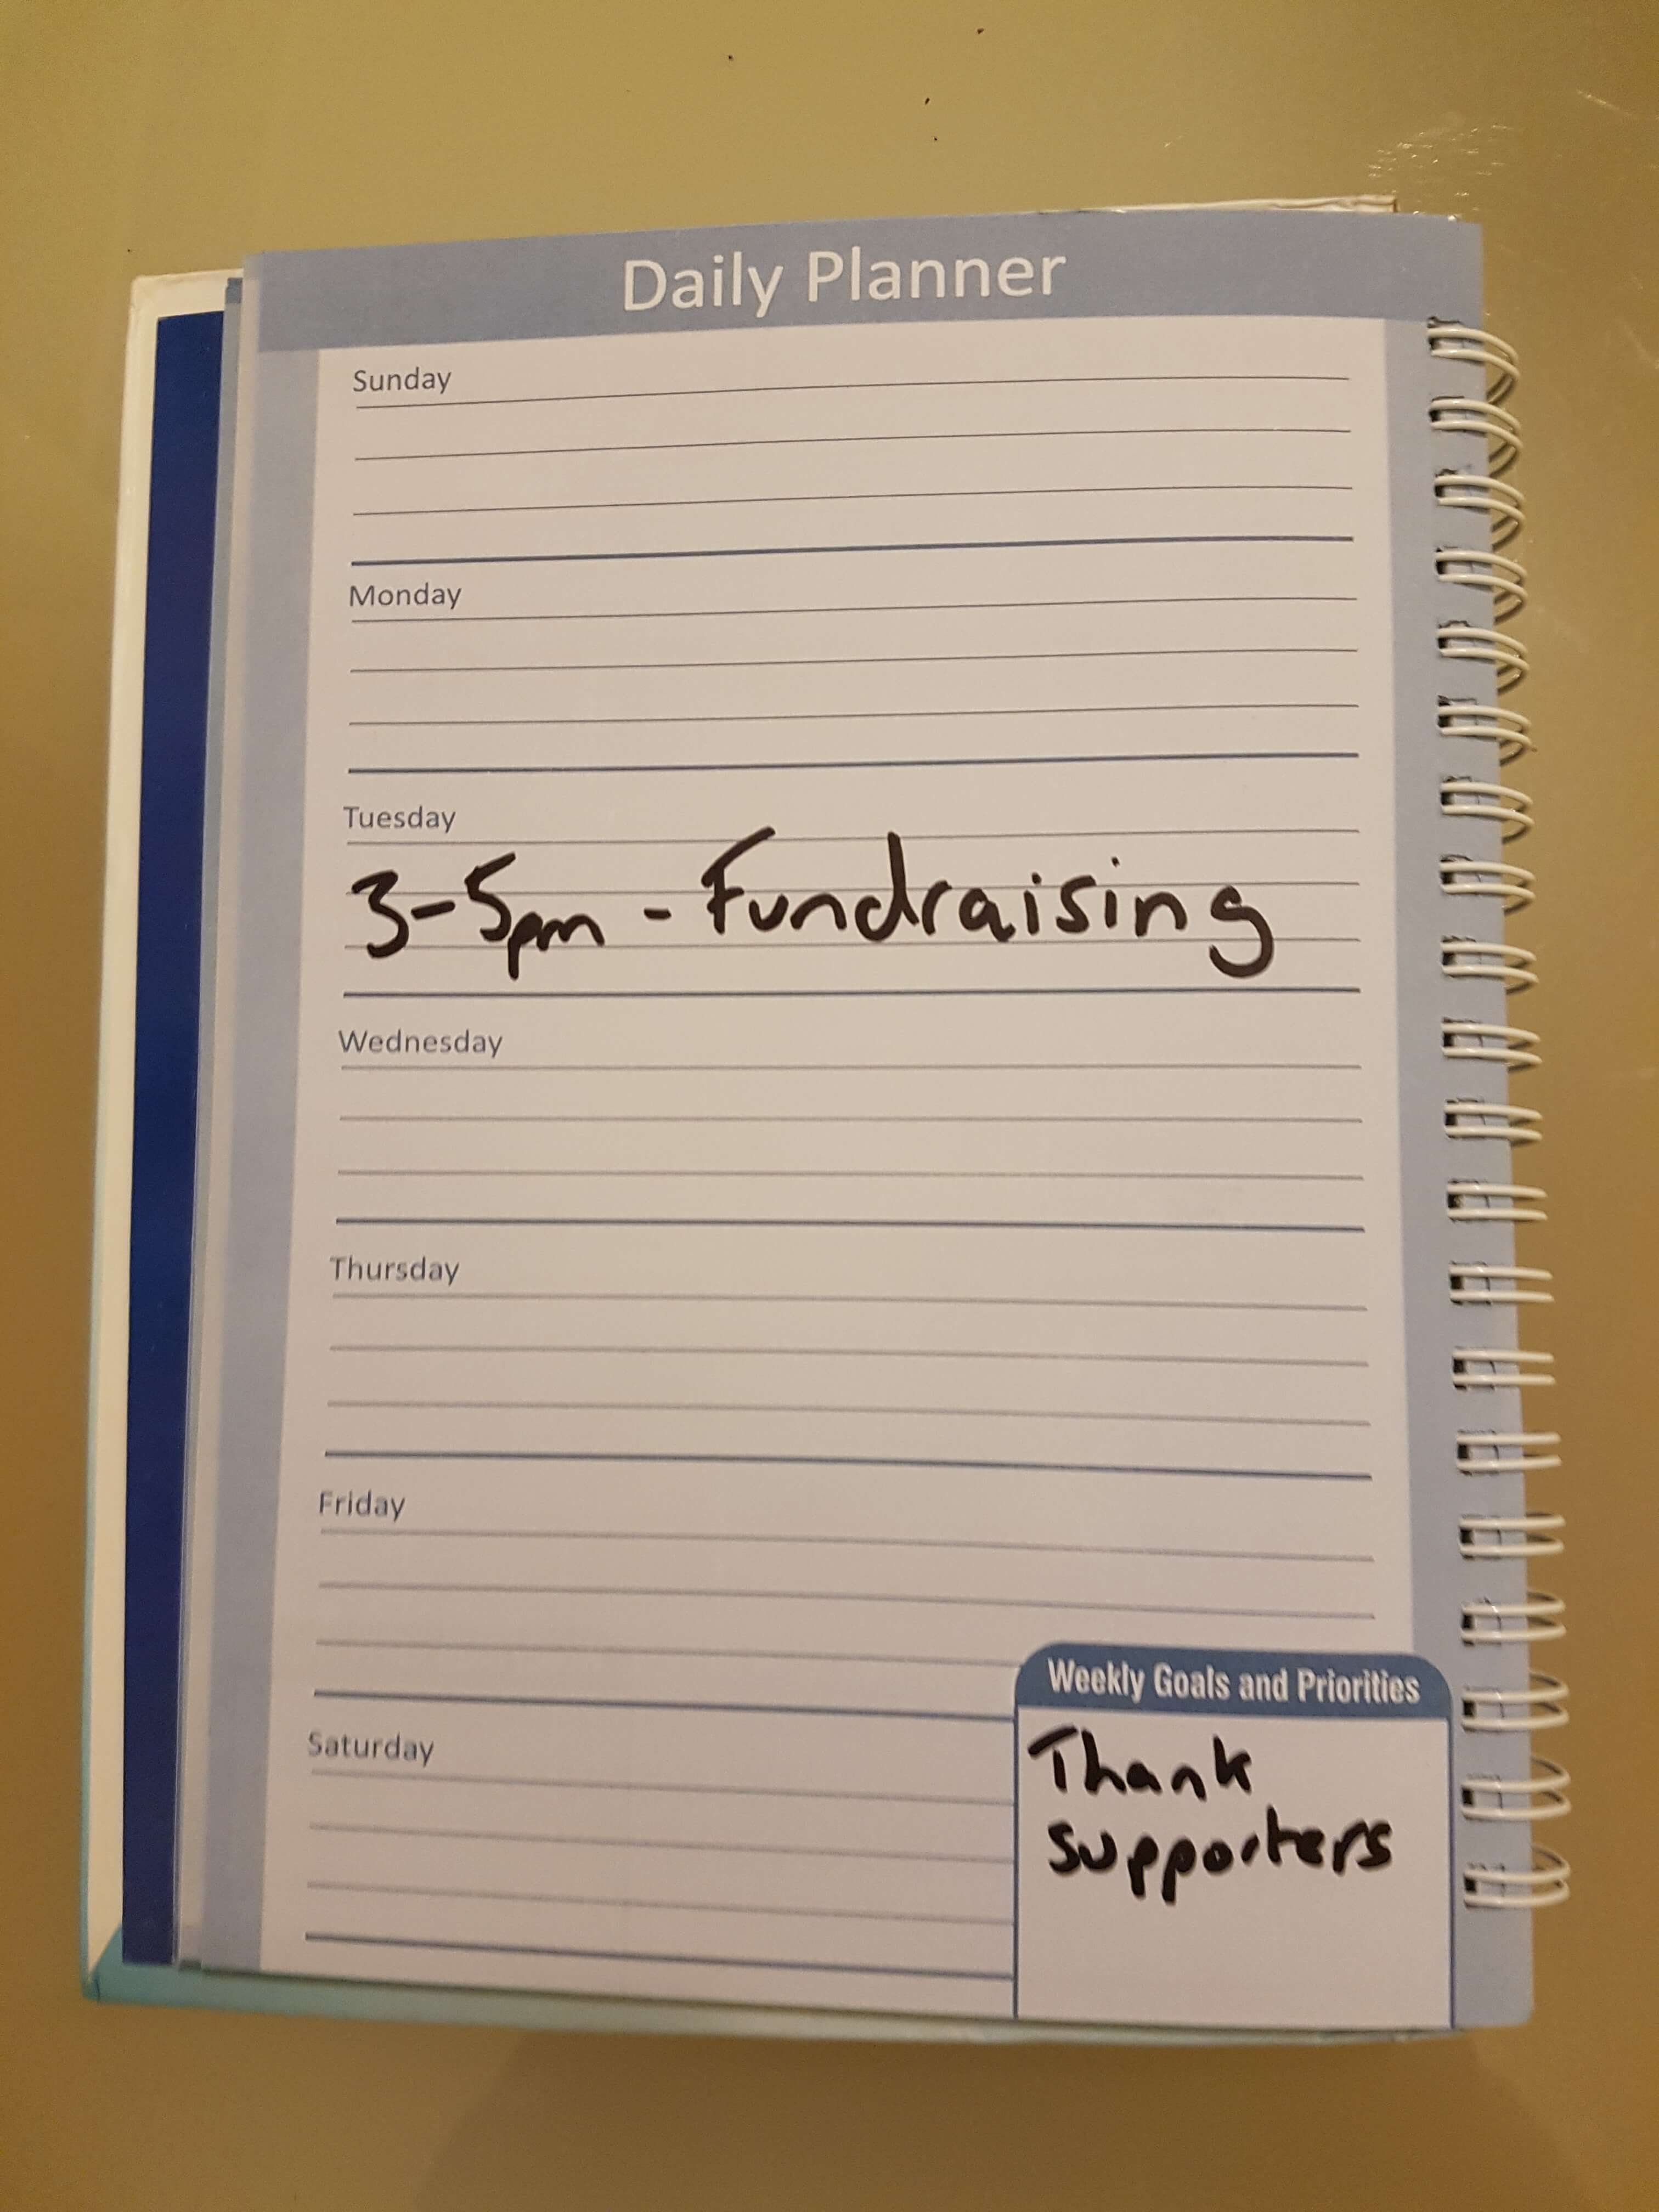 "A page of a Daily Planner. An entry between 3pm and 5pm says ""Fundraising"". In the weekly goals box it says ""Thank Supporters"""